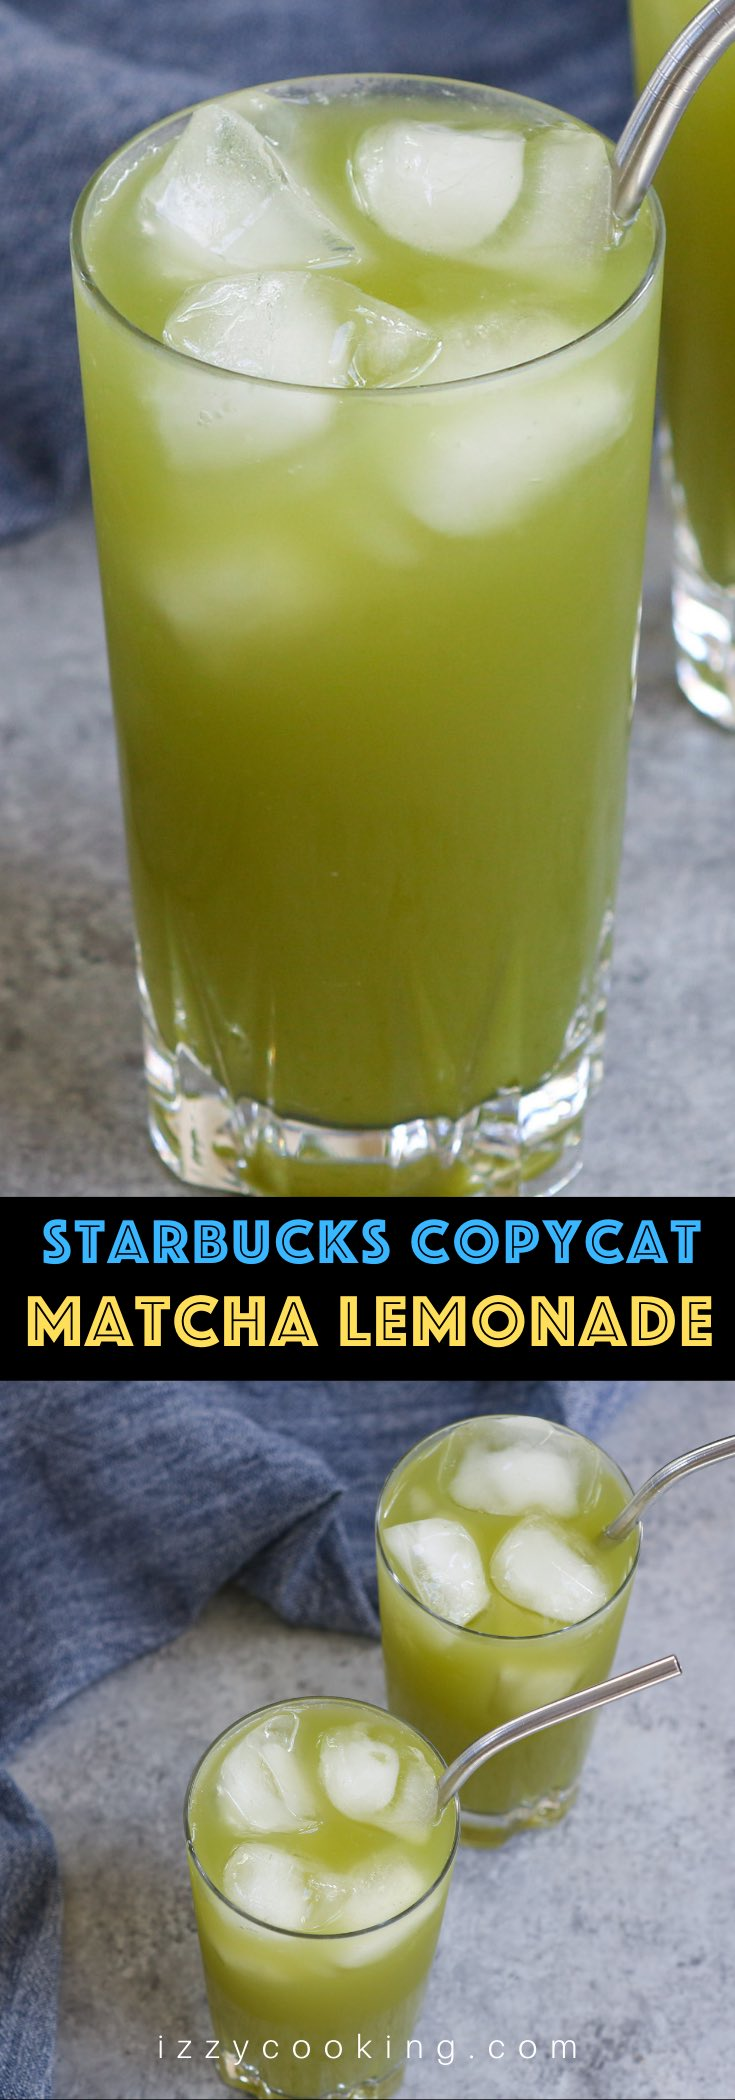 Looking to freshen up a hot summer day? Matcha Lemonade is a great way to start your day off bright. Bright green, that is. This refreshing and sweet iced matcha green tea lemonade is a copycat of the Starbucks' favorite that's similar to the classic Arnold Palmer drink. It's so easy and takes a few minutes to make!